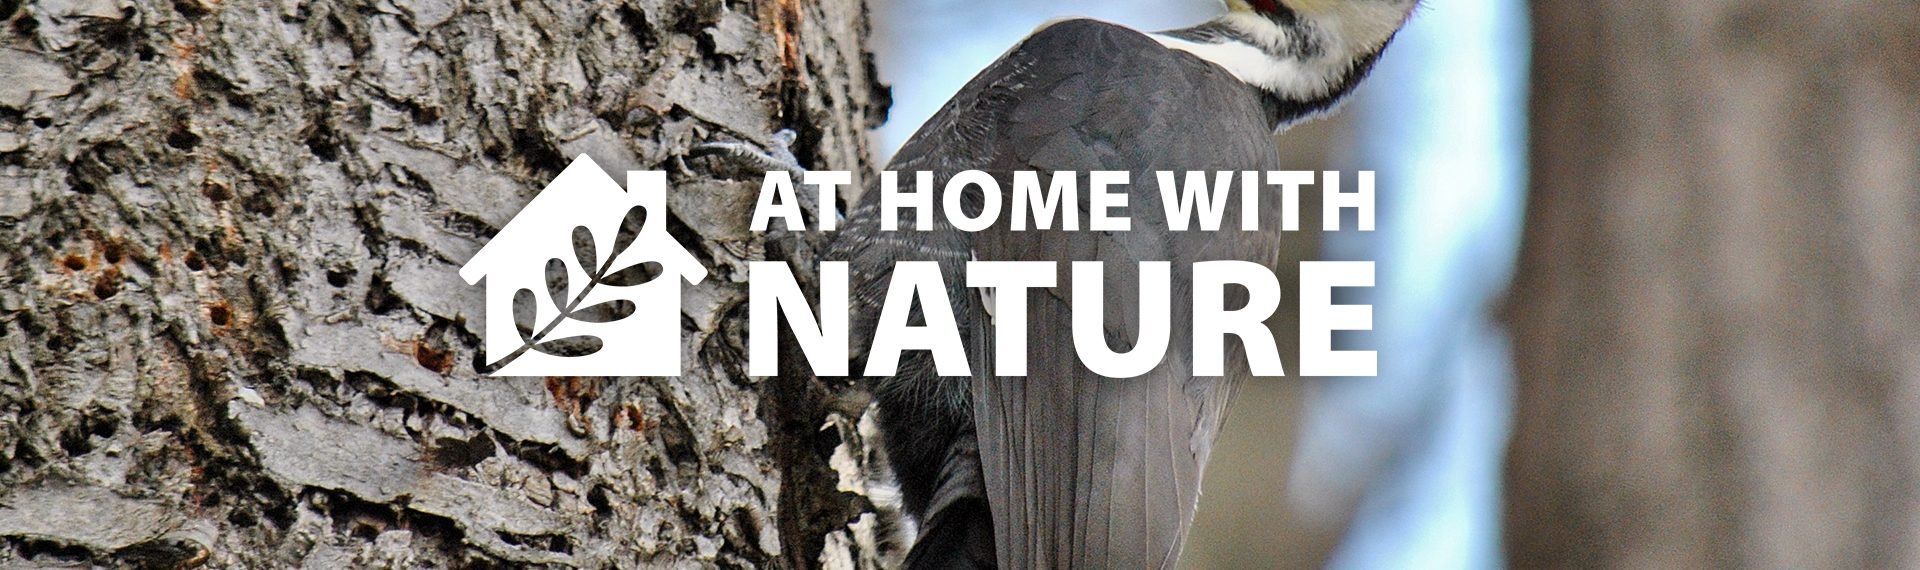 Pileated woodpecker - At Home With Nature